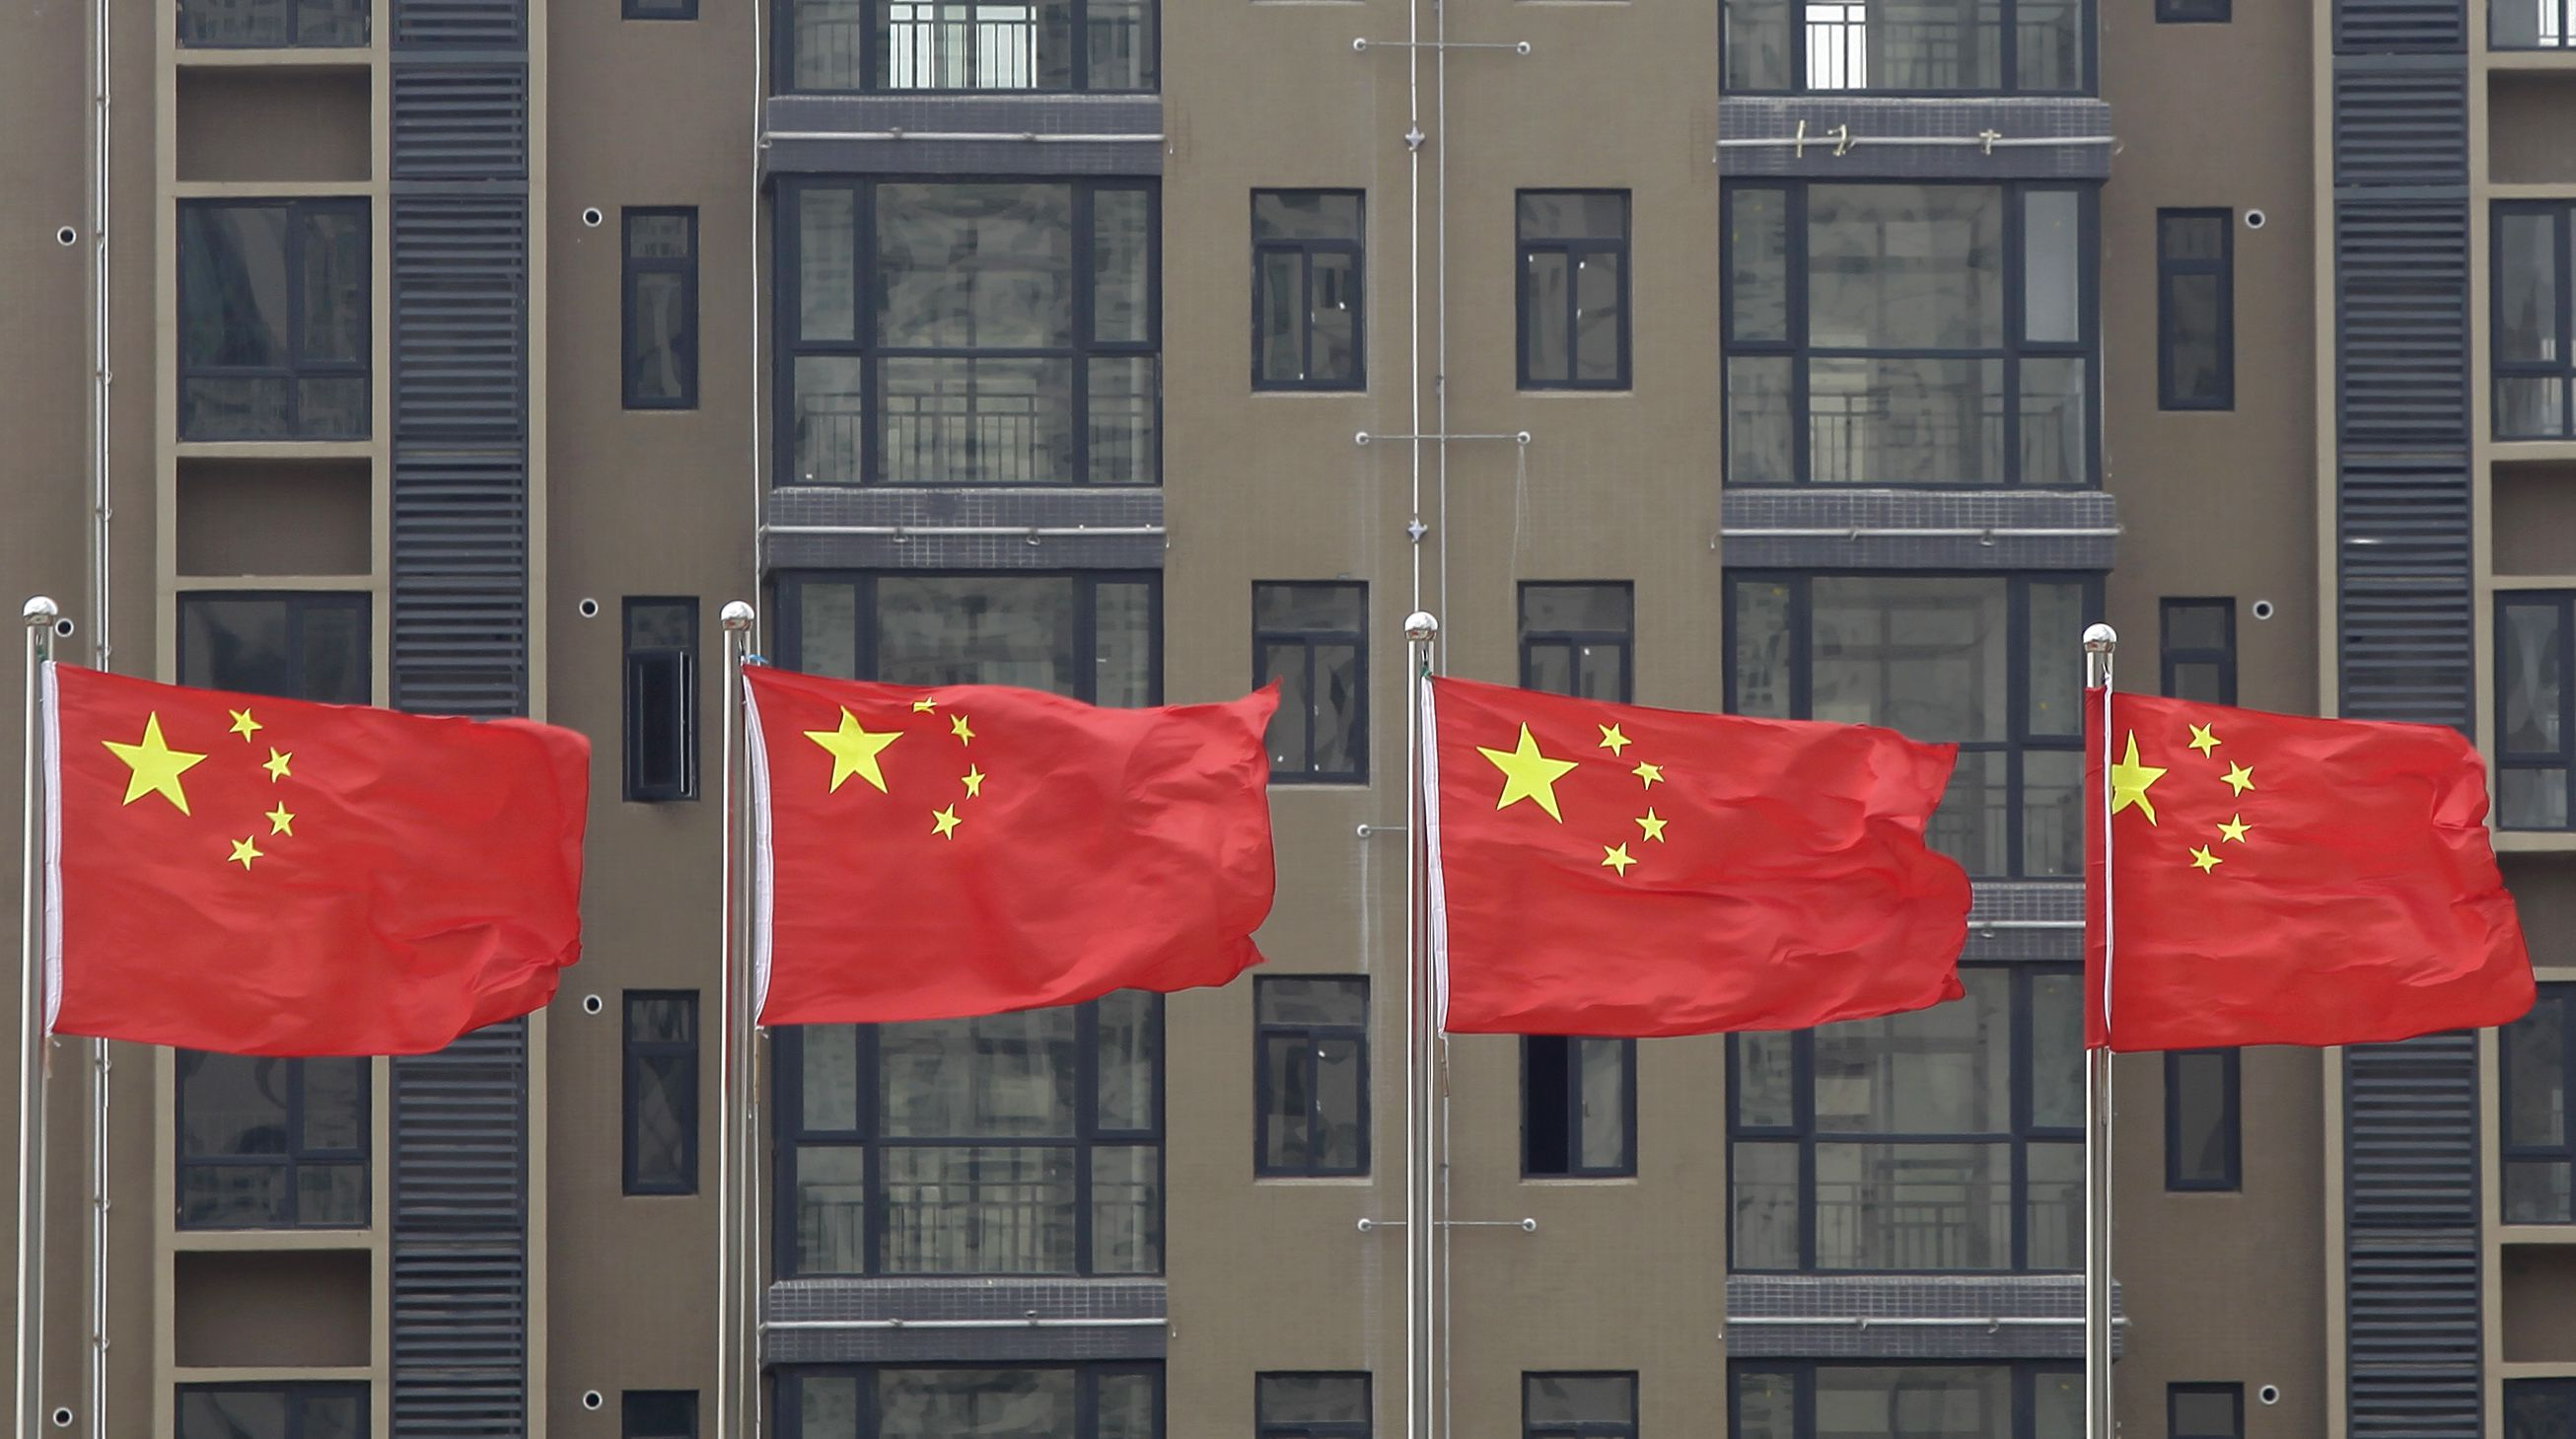 DATE IMPORTED:July 10, 2012Chinese national flags fly in front of a newly-built residential apartment in Wuhan, Hubei province July 10, 2012. China must firmly maintain its property tightening measures to cool housing prices, Premier Wen Jiabao was quoted as saying on Saturday, underscoring official concerns about renewed bubbles as the central bank ratchets up policy easing to support growth. REUTERS/Stringer